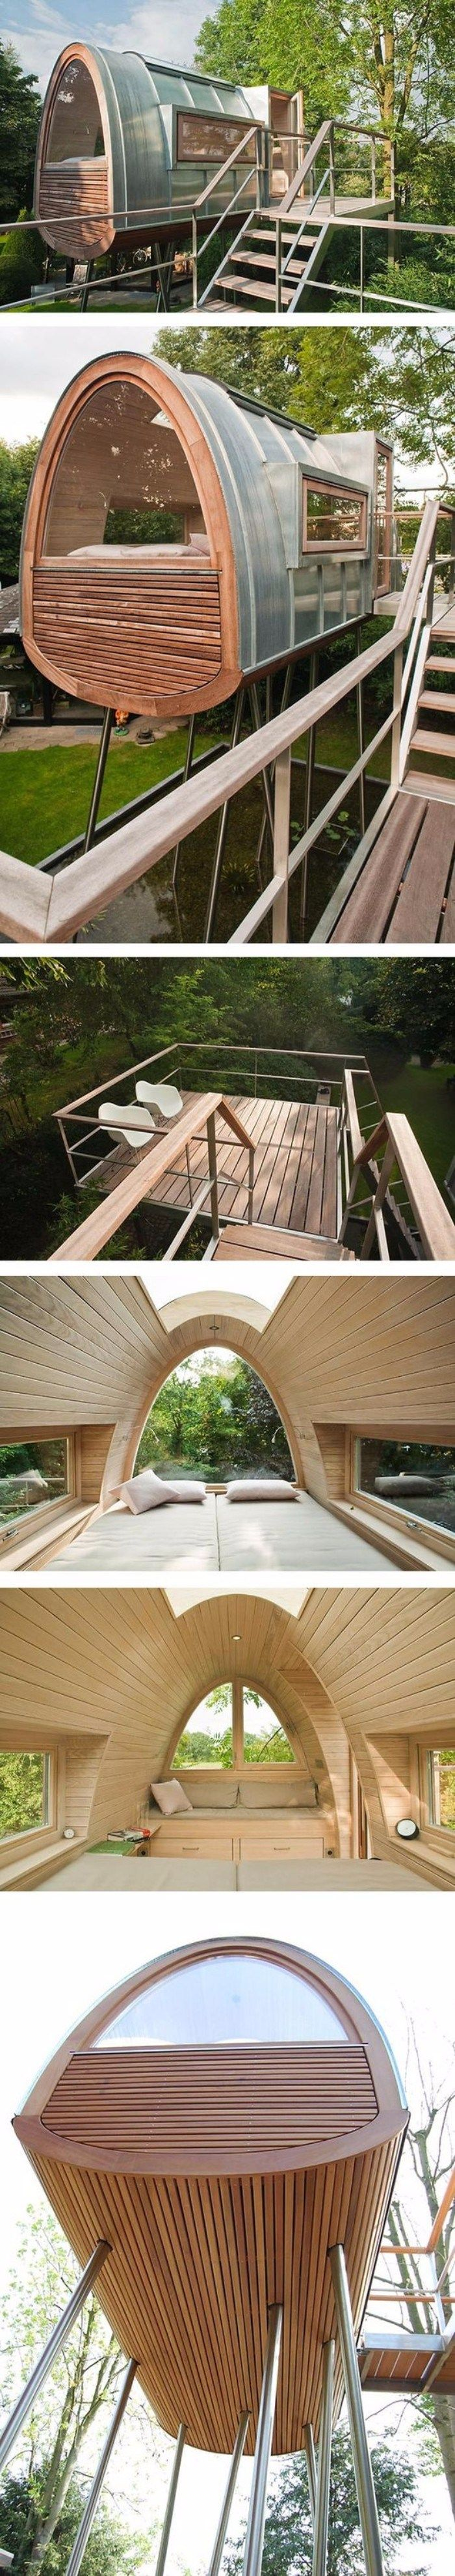 best You live where images on Pinterest Tree houses